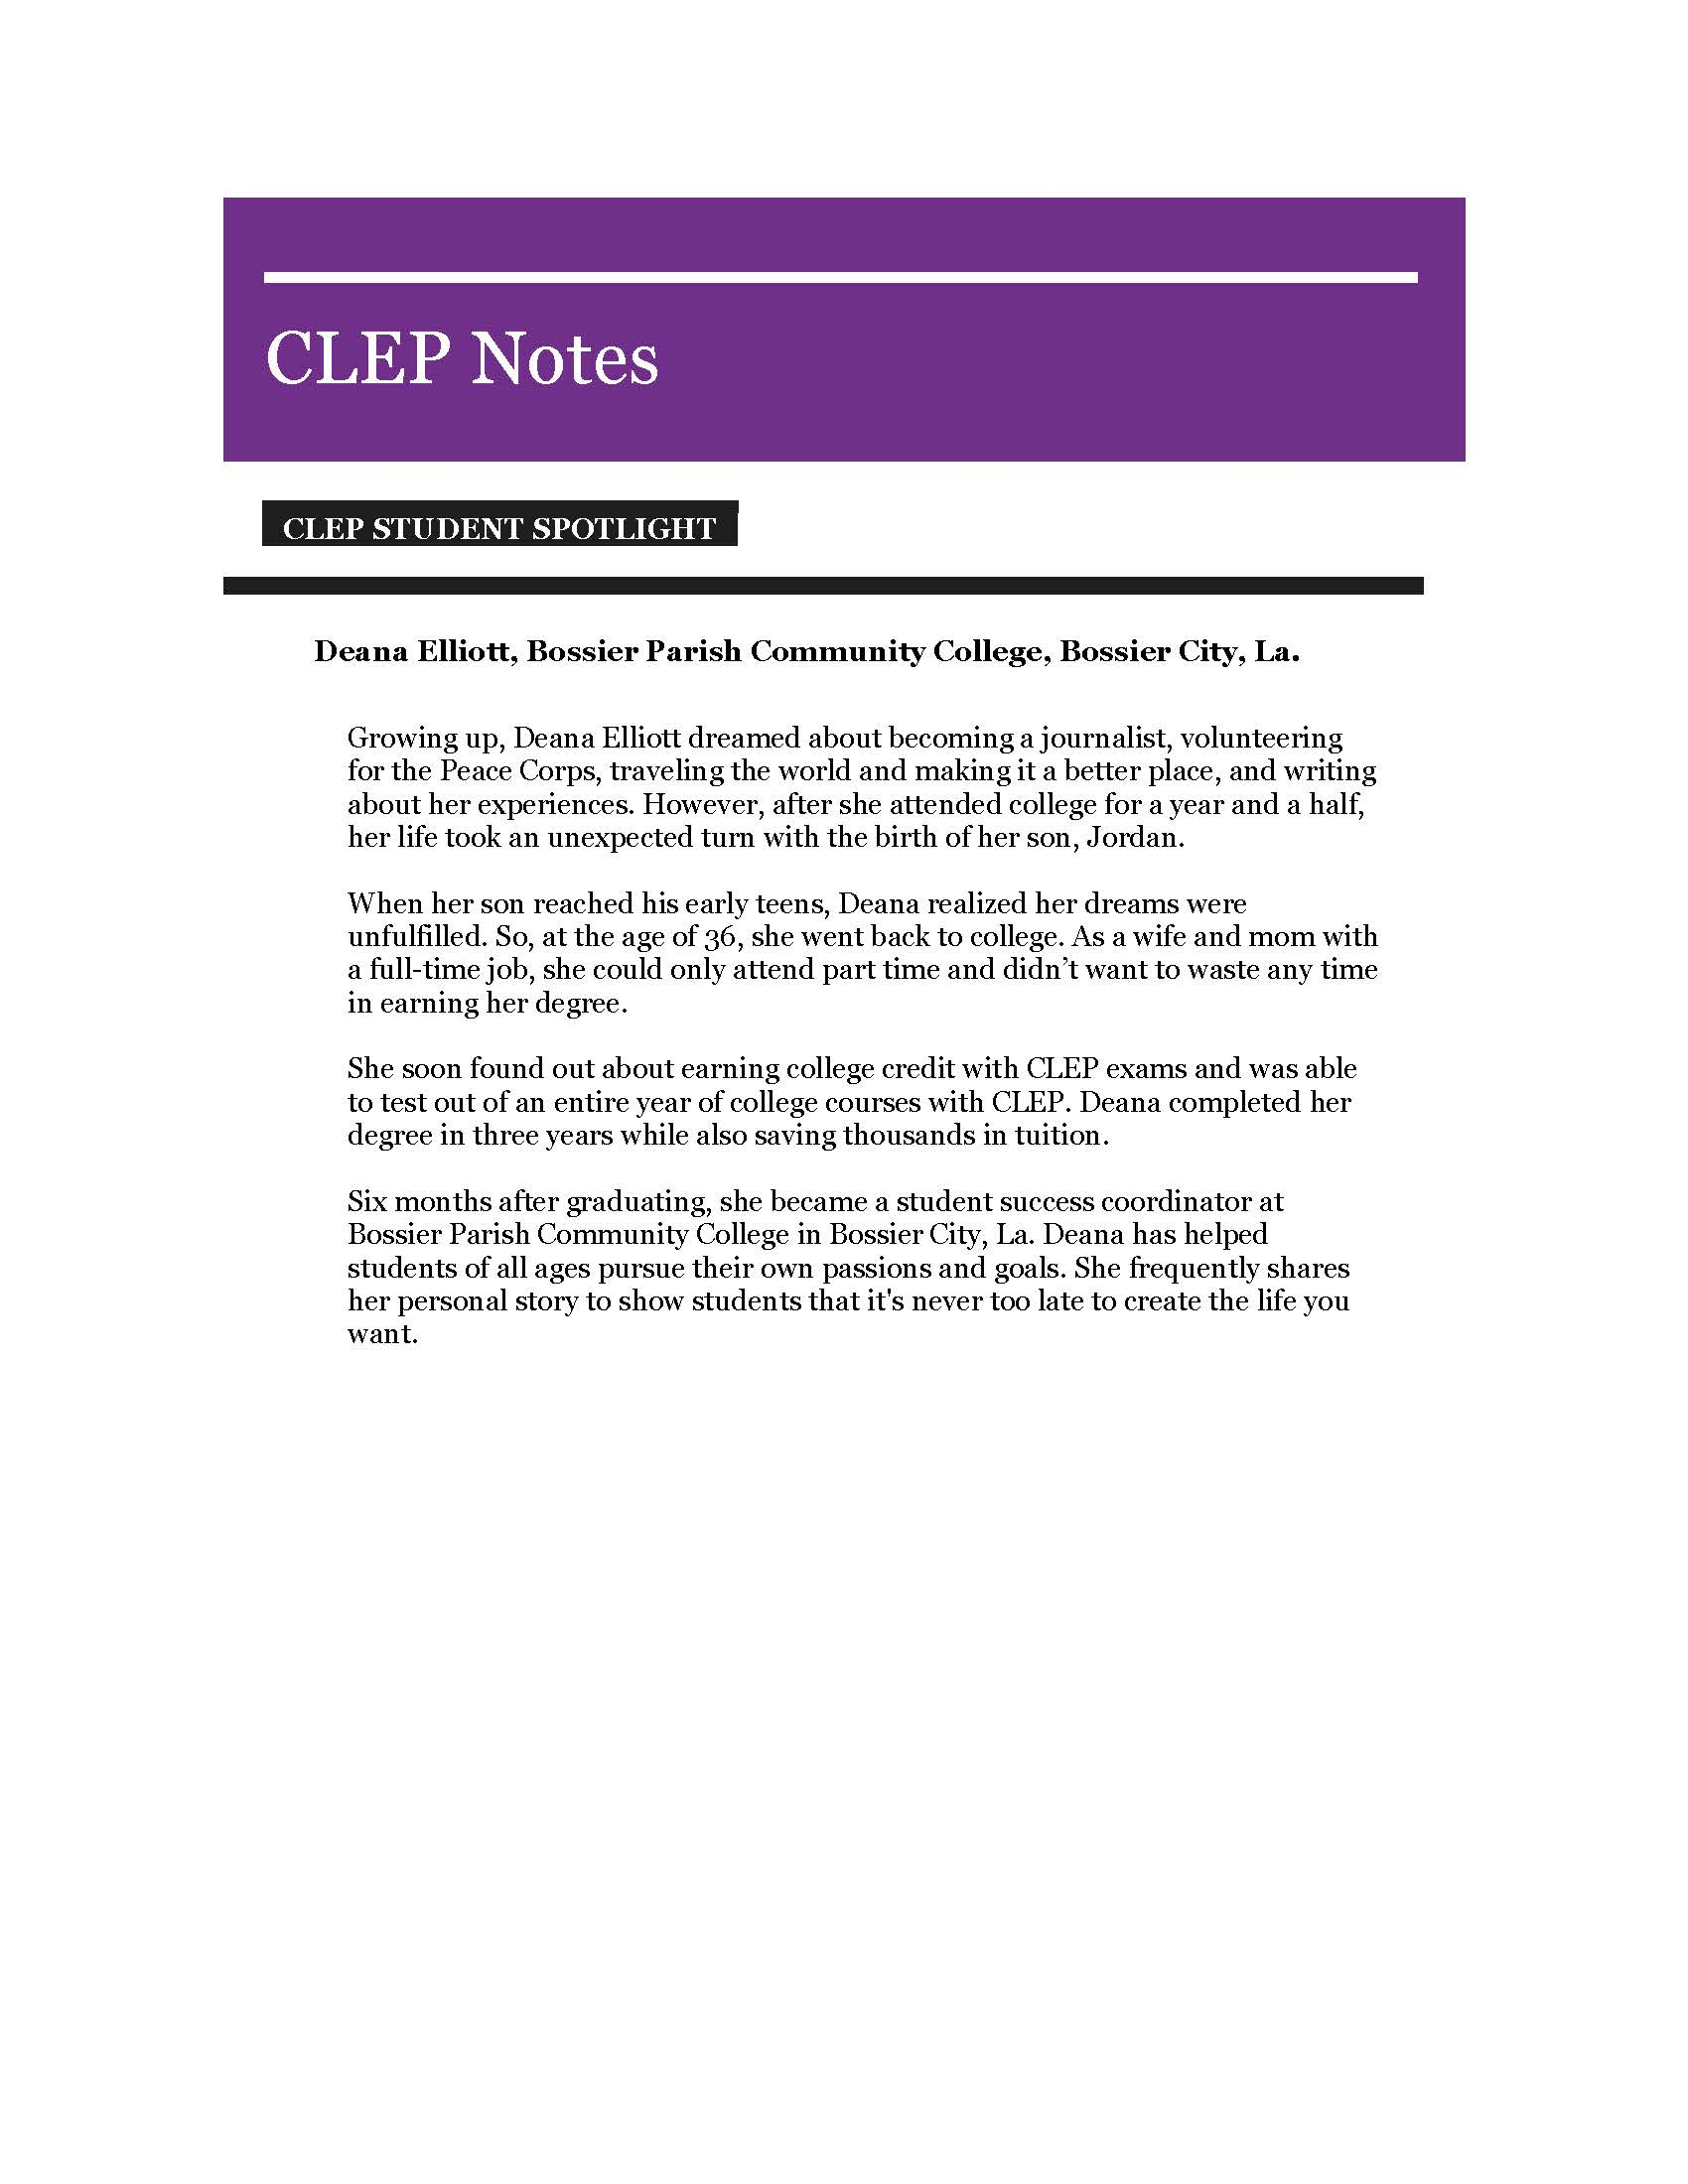 Bpcc Graduate Featured In May 2019 Clep® Notes Newsletter Within Bossier Parrish School Calendar